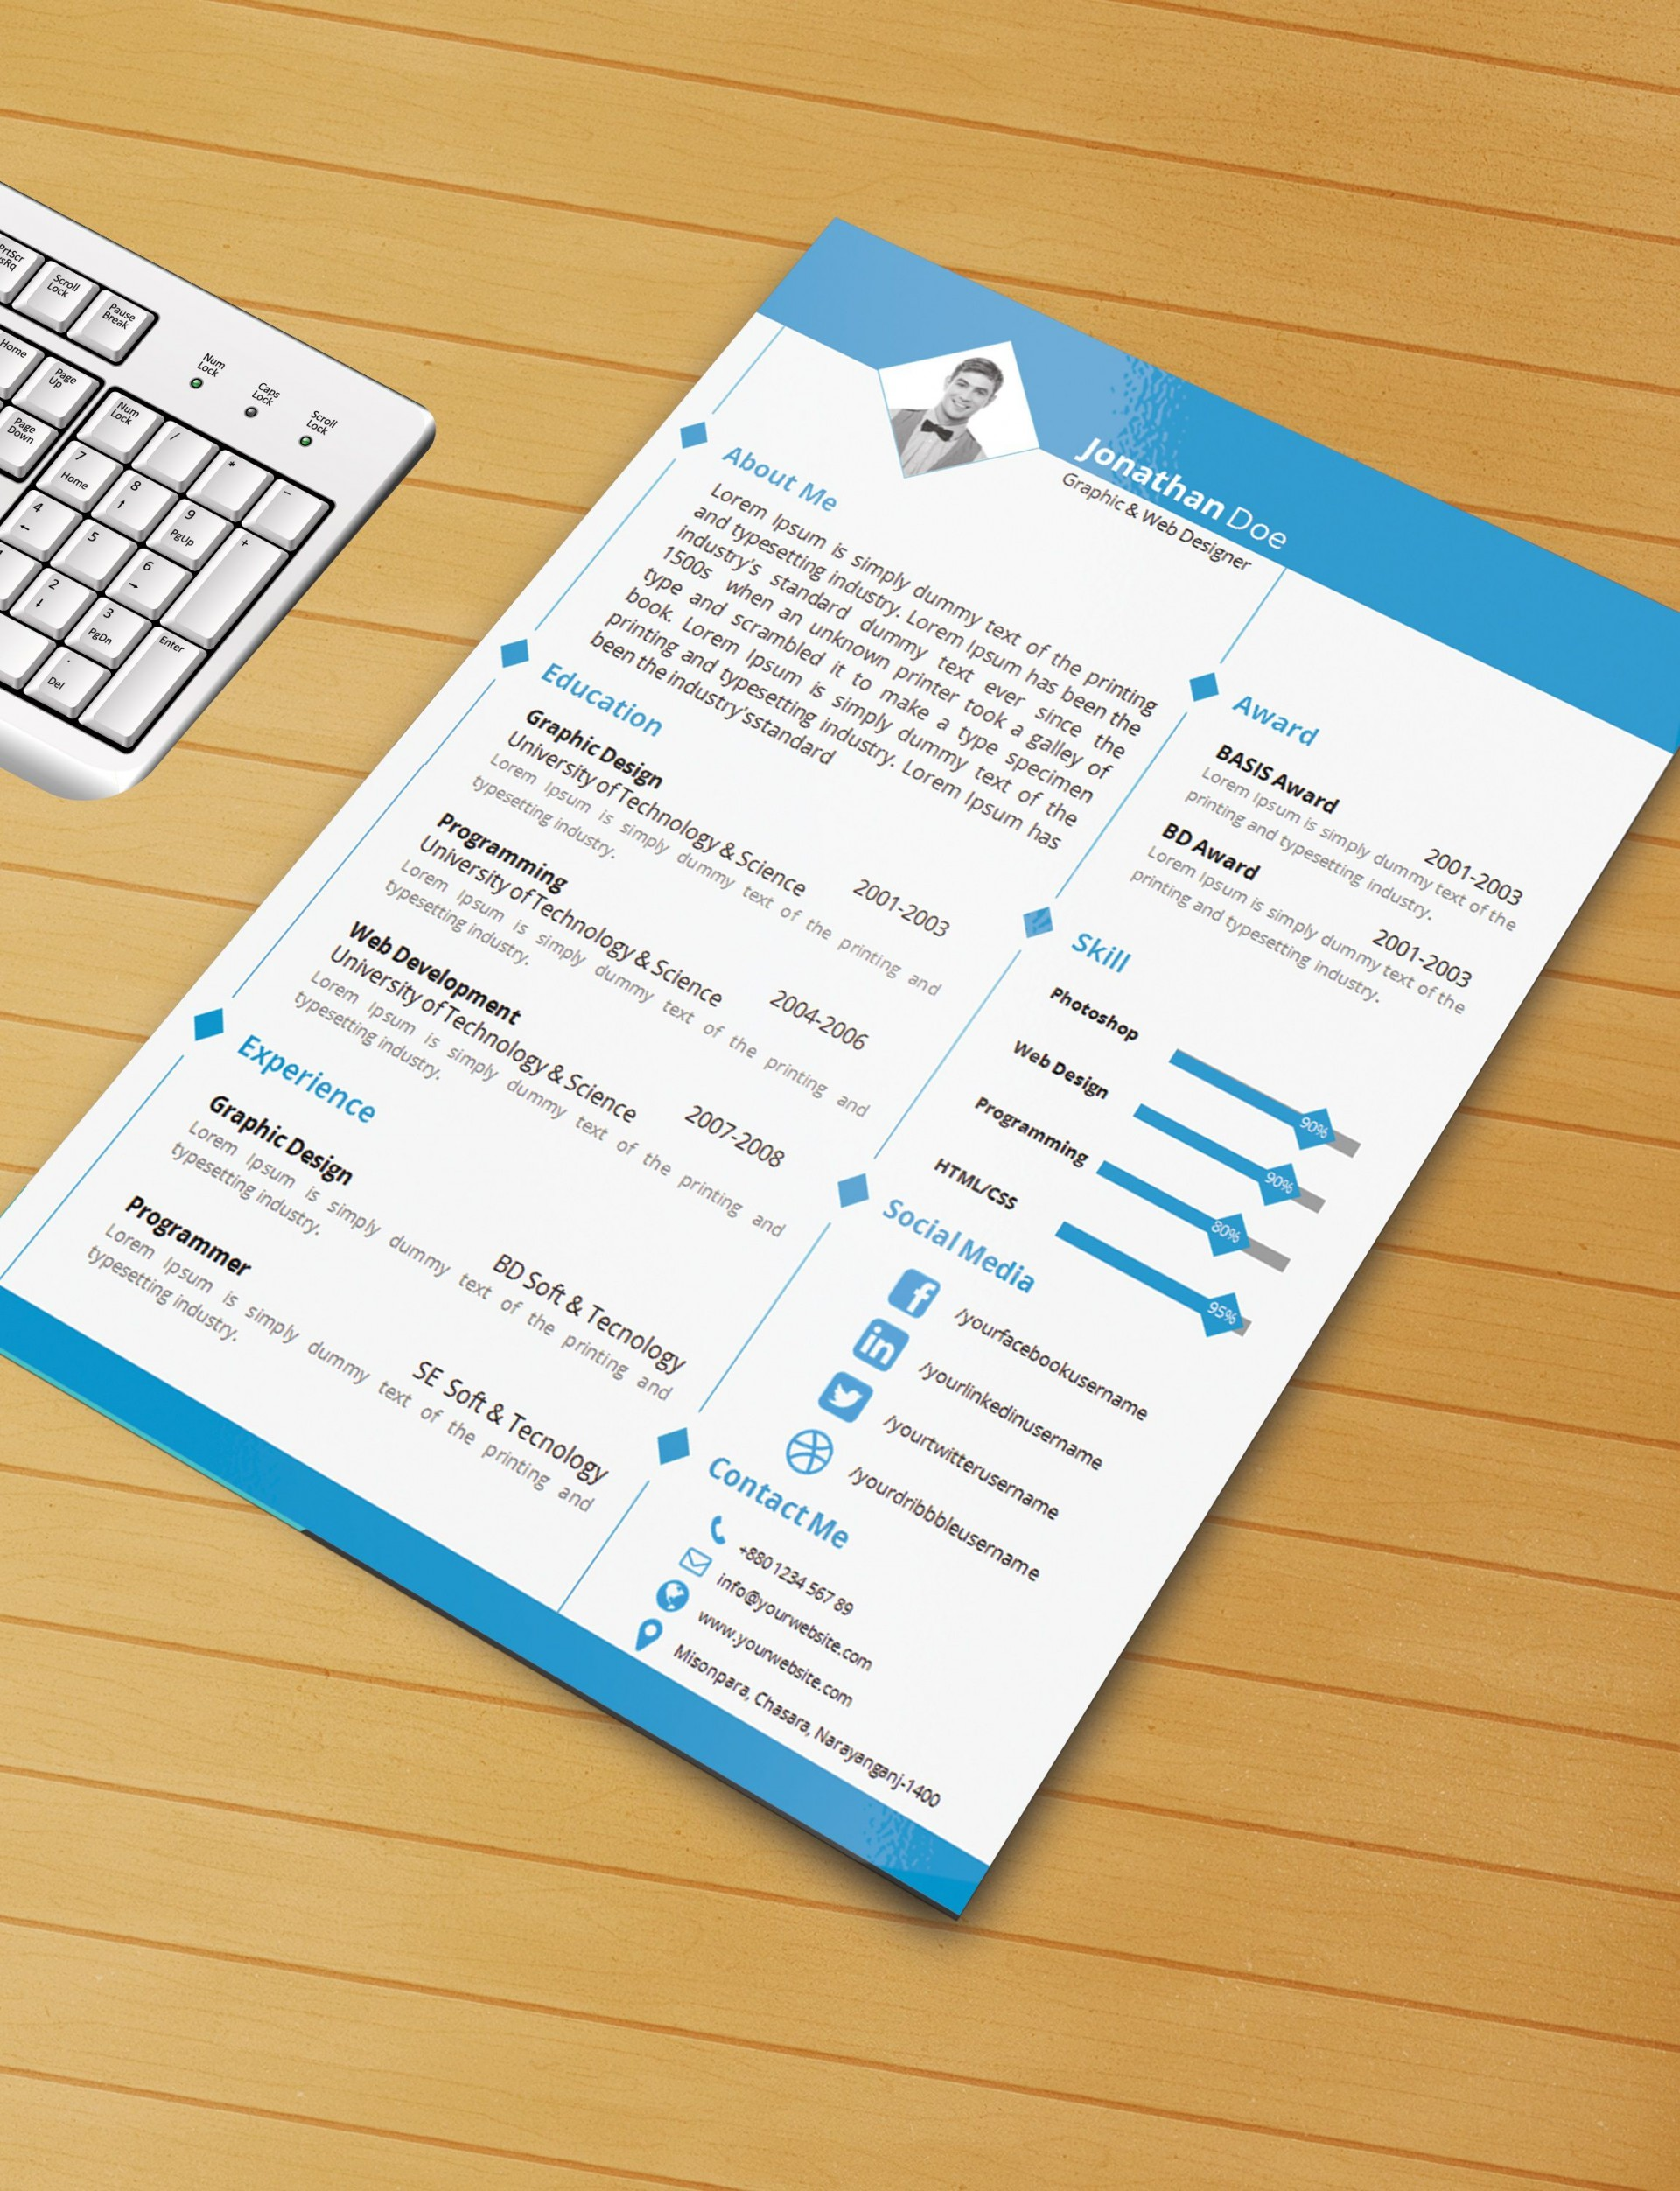 004 Outstanding Microsoft Word Template Download High Definition  2010 Resume Free 2007 Error Invoice1920